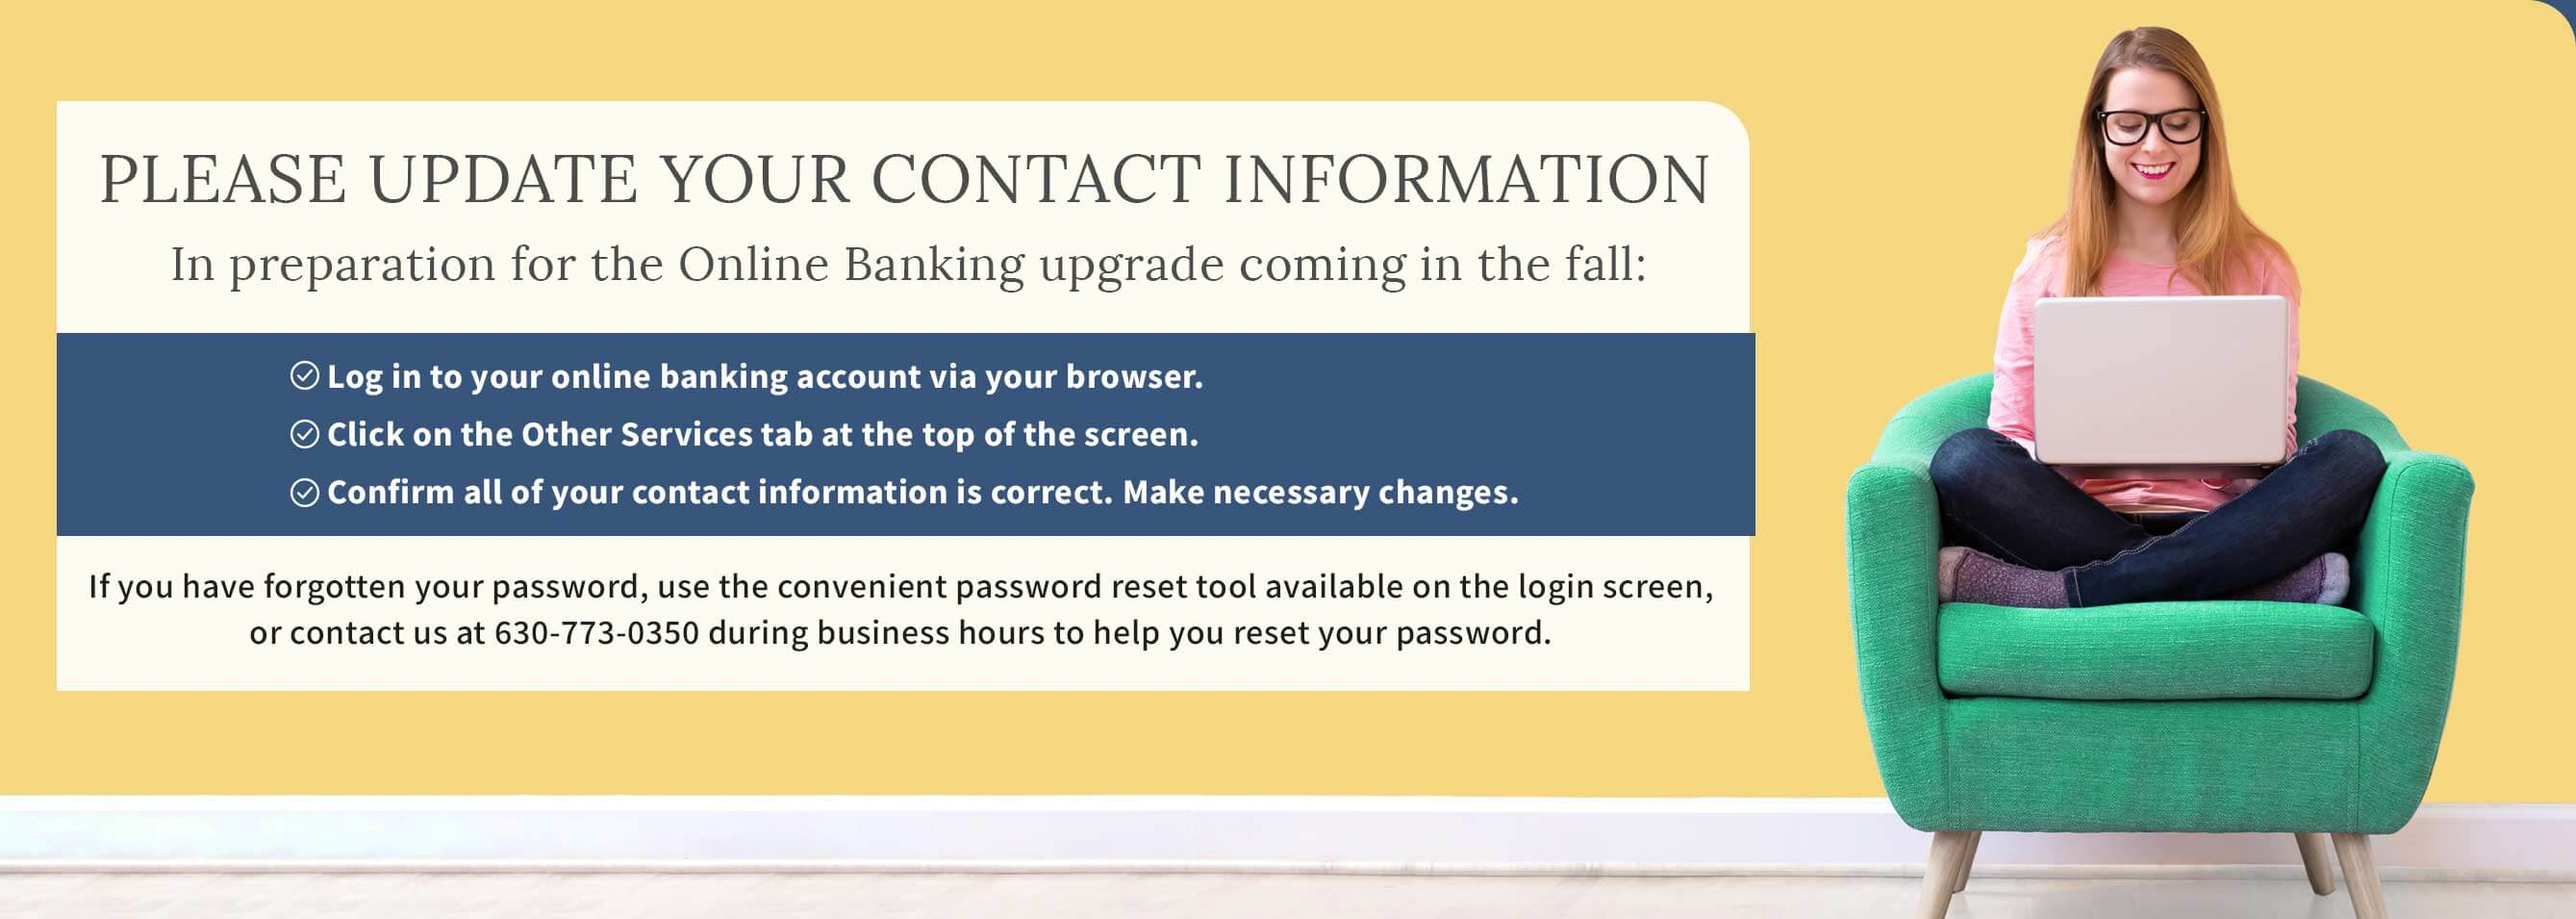 Please Update Your Contact Information. In preparation for the Online Banking upgrade coming in the fall: Log in to your online banking account via your browser. Click on the Other Services tab at the top of the screen. Confirm all of your contact information is correct. Make necessary changes.  If you have forgotten your password, use the convenient password reset tool available on the login screen,  or contact us at 630-773-0350 during business hours to help you reset your password.